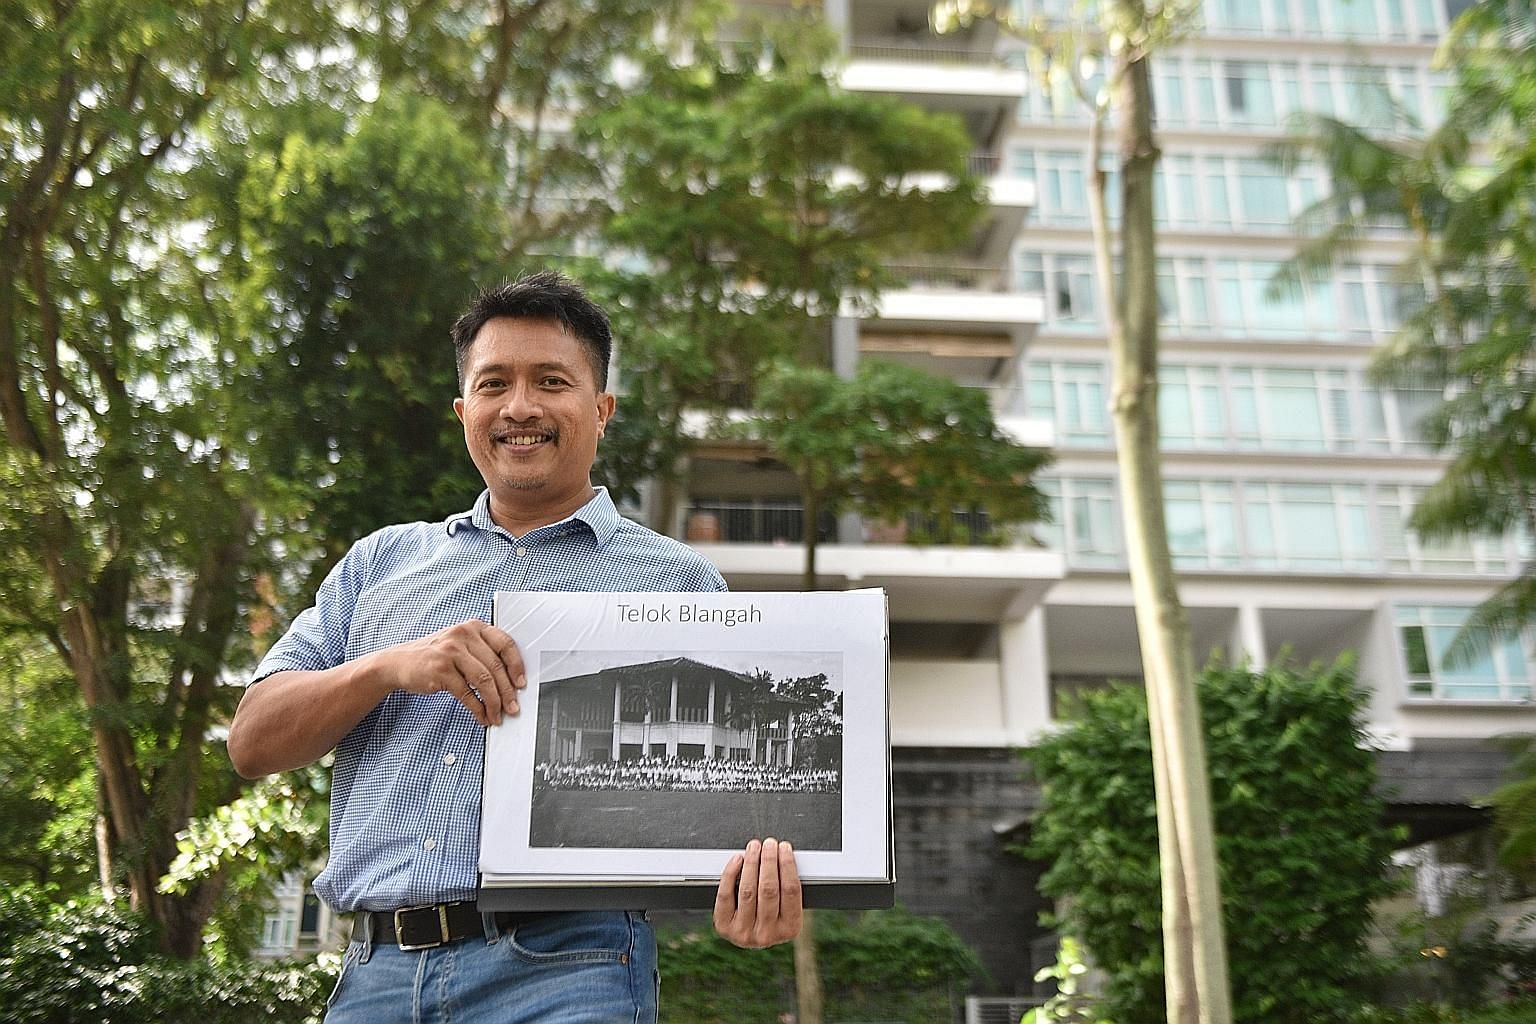 Heritage researcher Sarafian Salleh holding an undated picture of Istana Engku Khalid when Radin Mas Primary School was operating out of it. The Pearl@Mount Faber condominium now occupies the spot. Mr Sarafian learnt that Singapore was once home to a